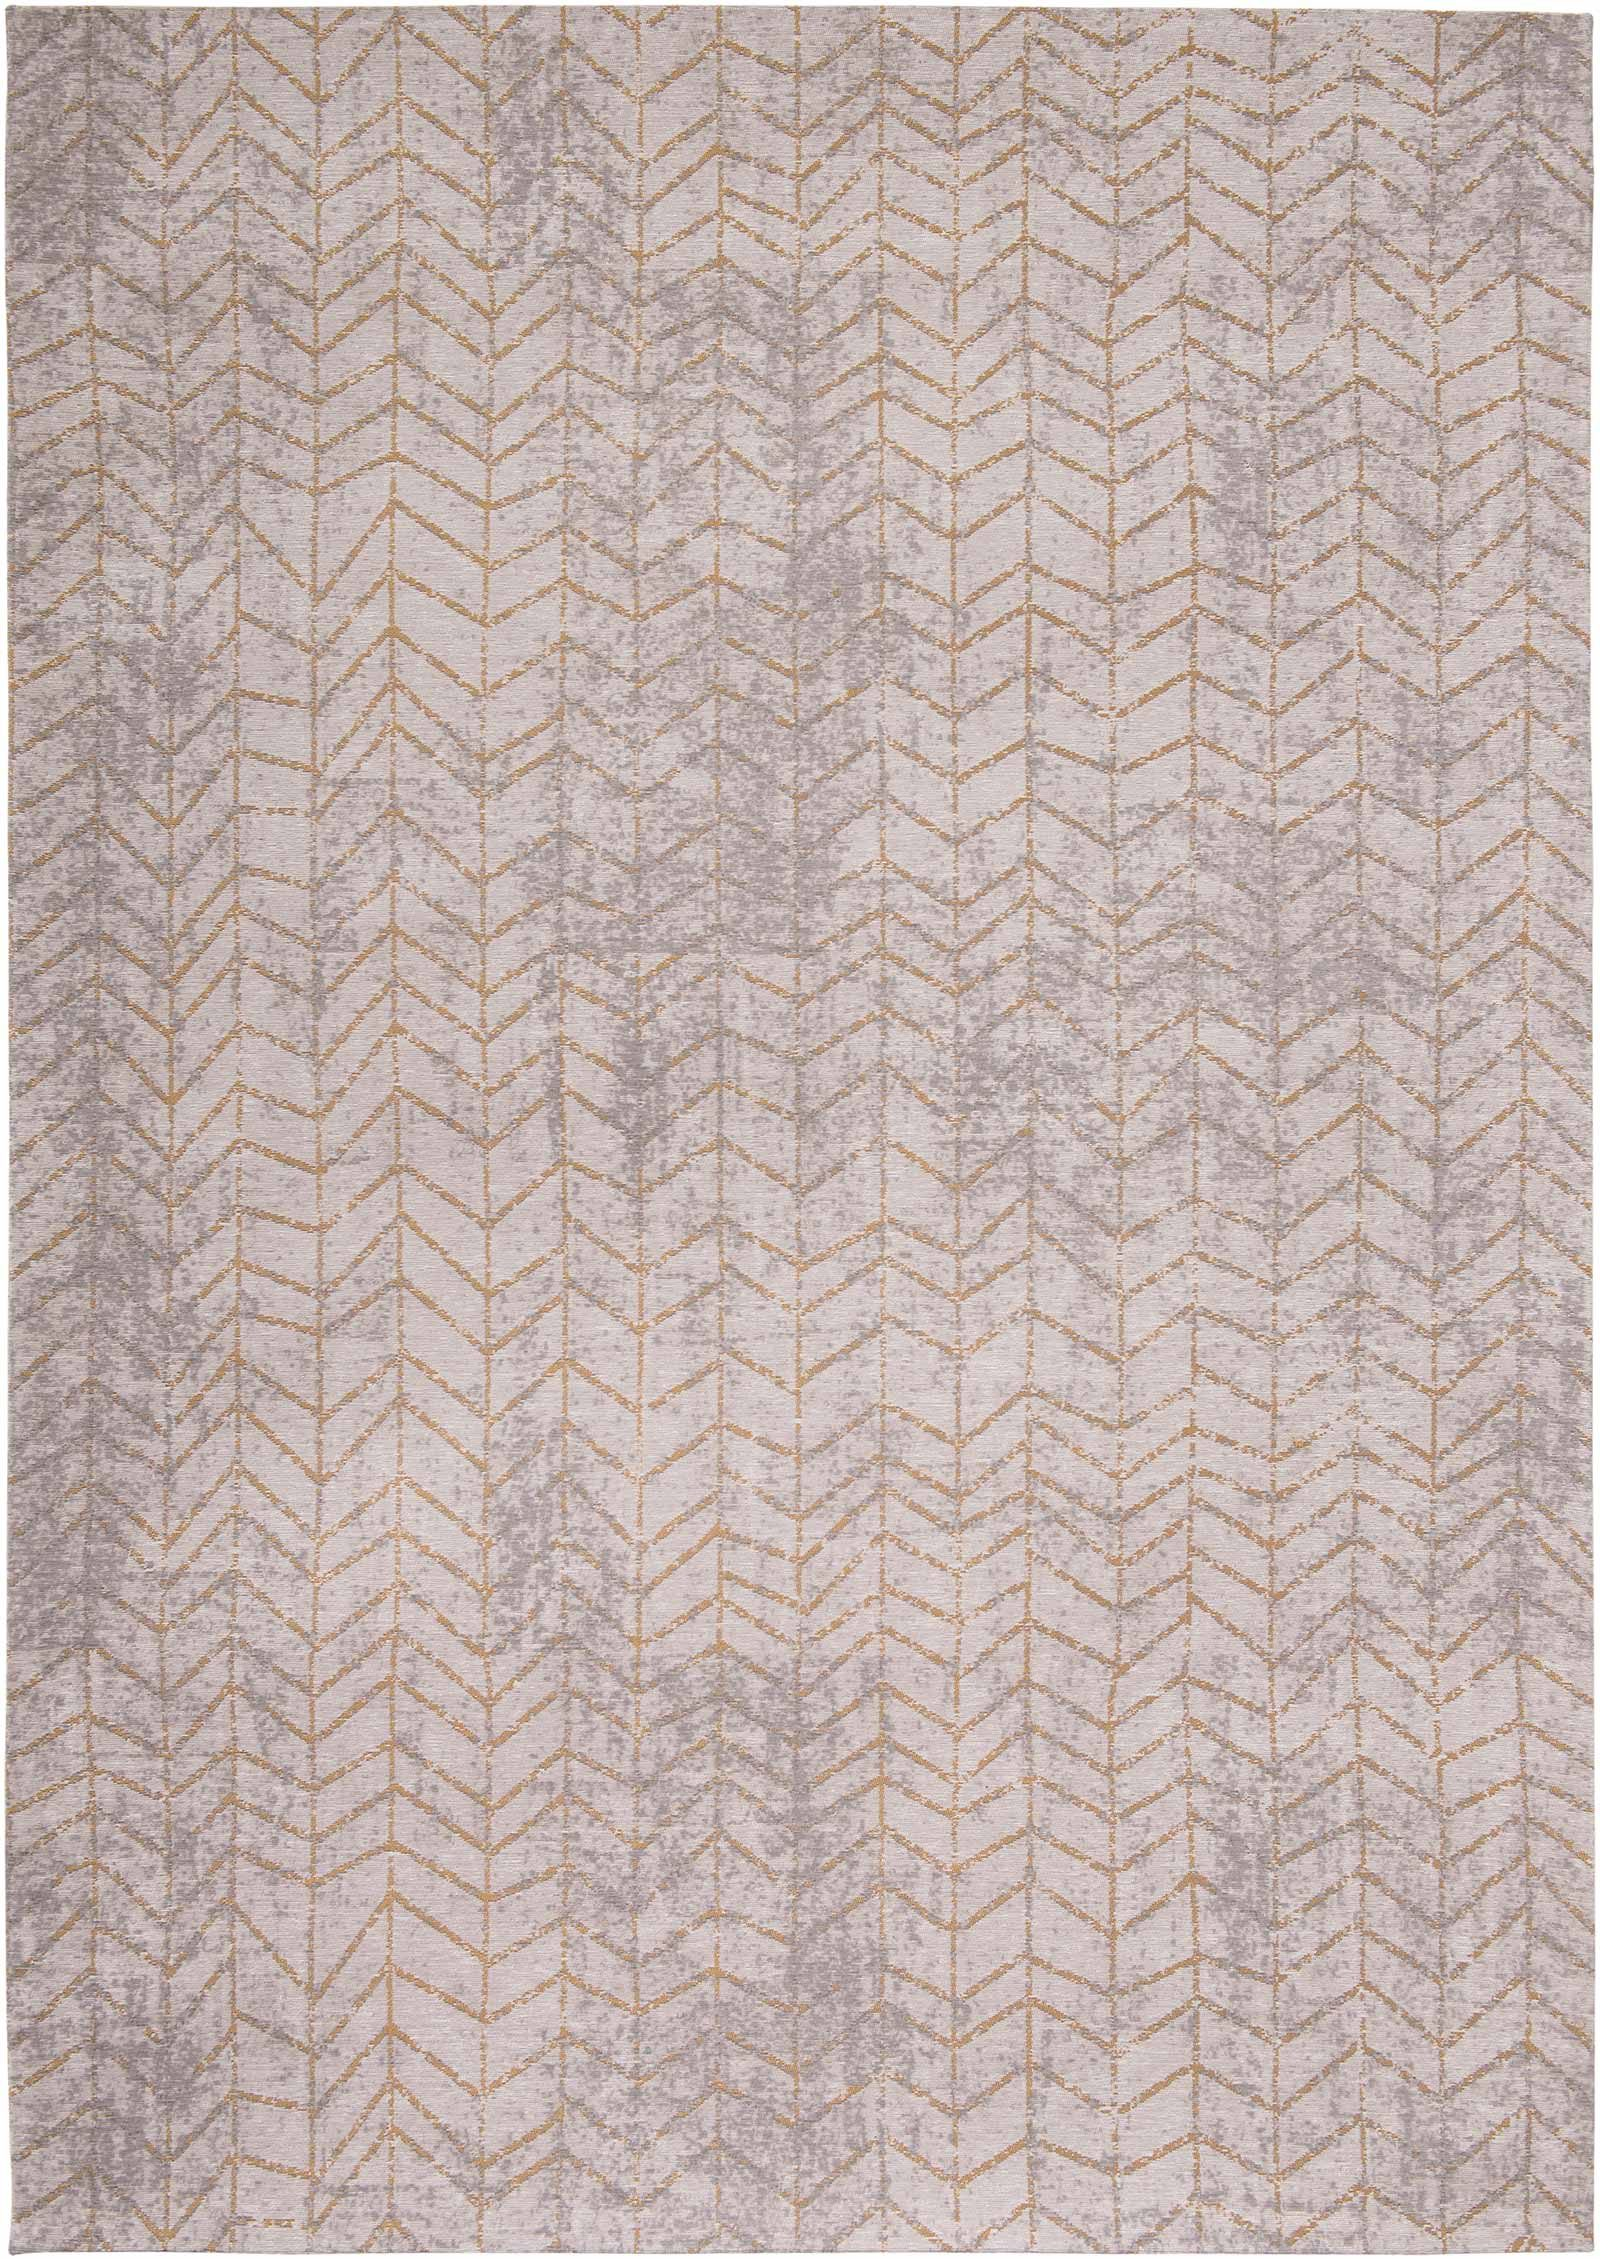 Louis De Poortere Jackies Wilton Rugs Jacob 8983